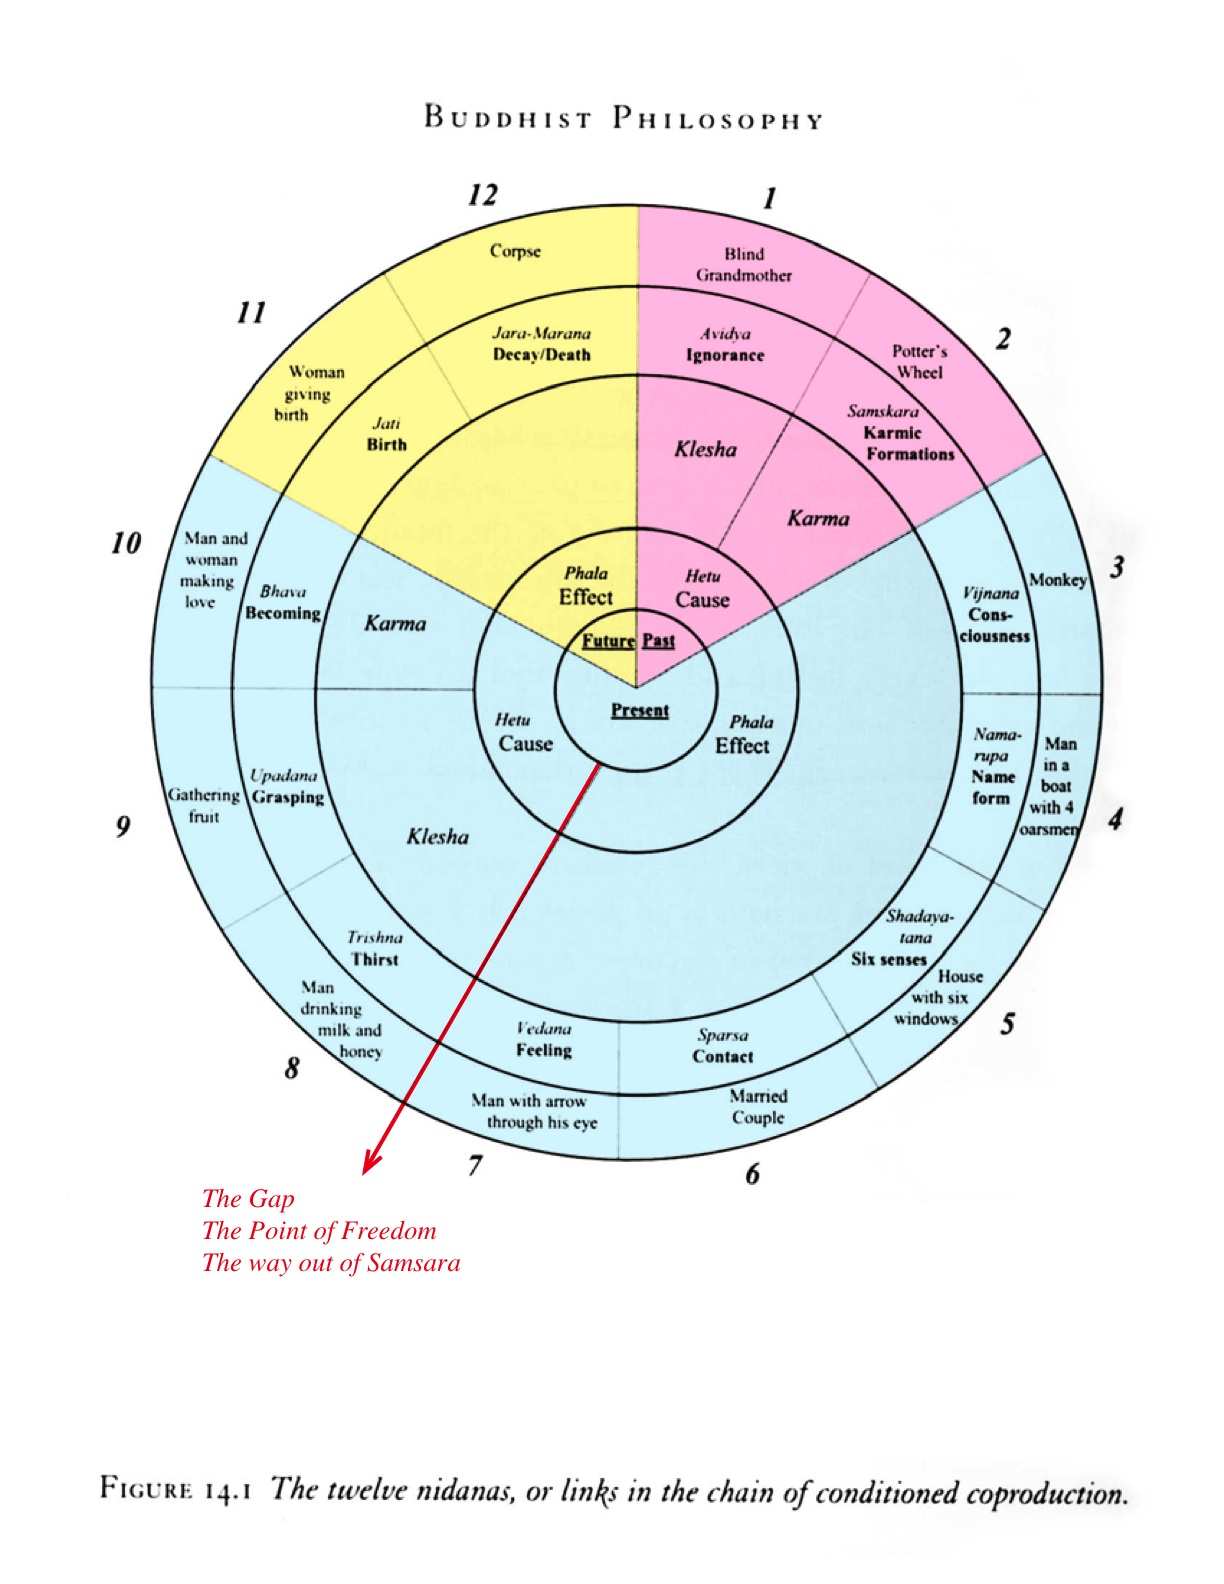 The 12 Nidanas broken down…  (12 links of interdependent origination) in relation to karma.   This is the cycle of samsara as laid out in buddhist terms and also describes what each is as a symbol on the Wheel of Life.     The red arrow is where our meditation takes place.